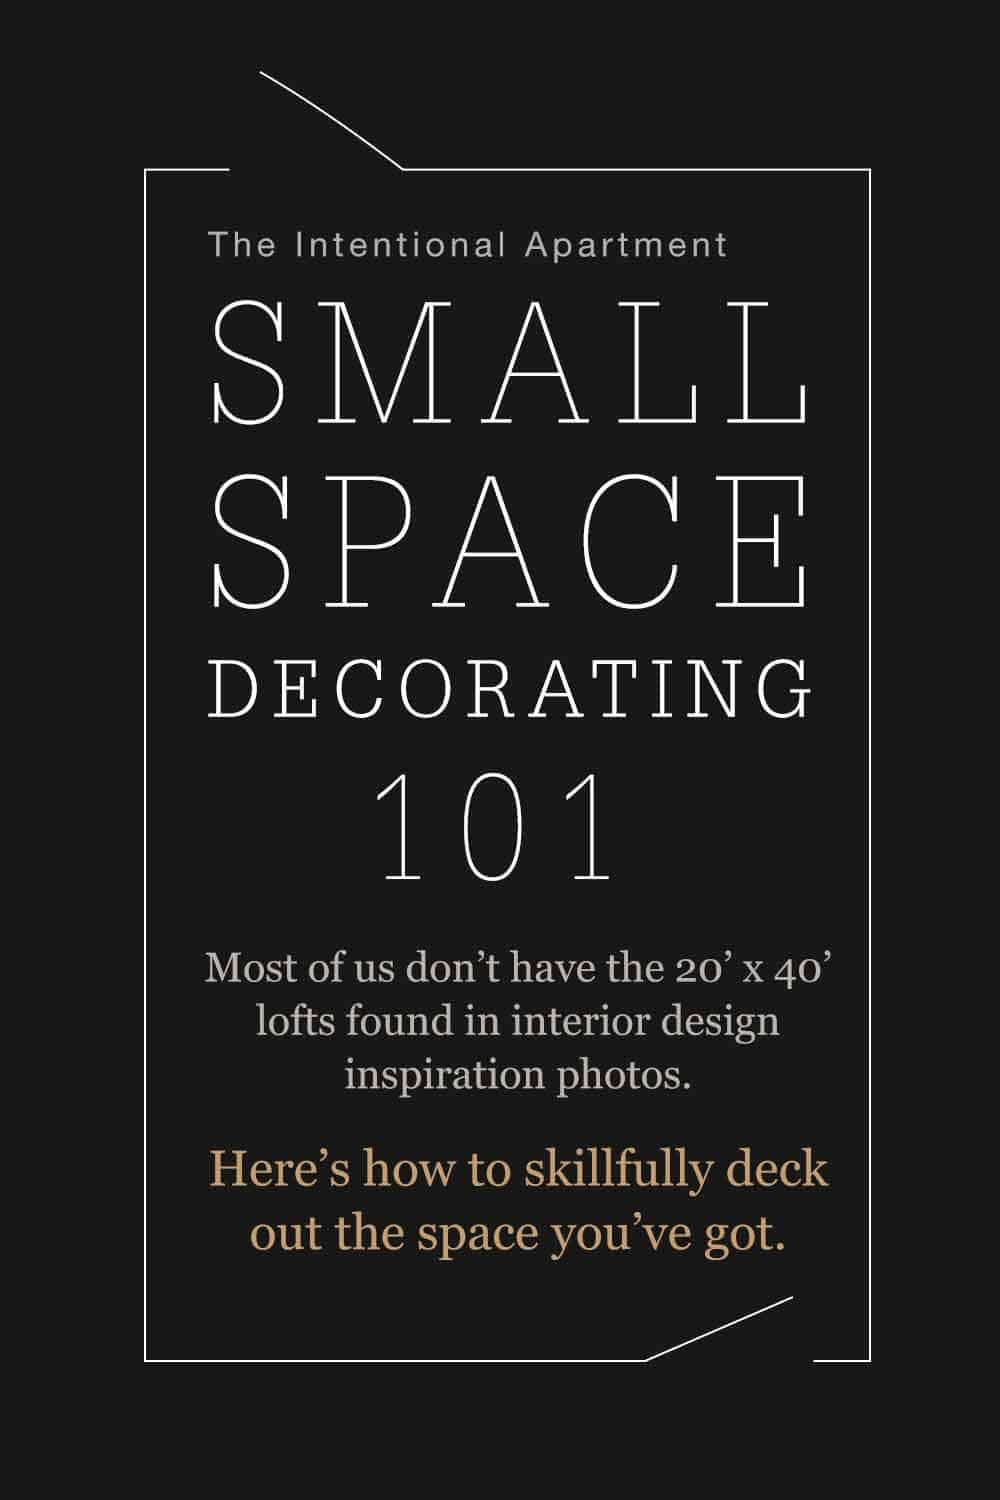 How to decorate a small room - Small Space Decorating 101